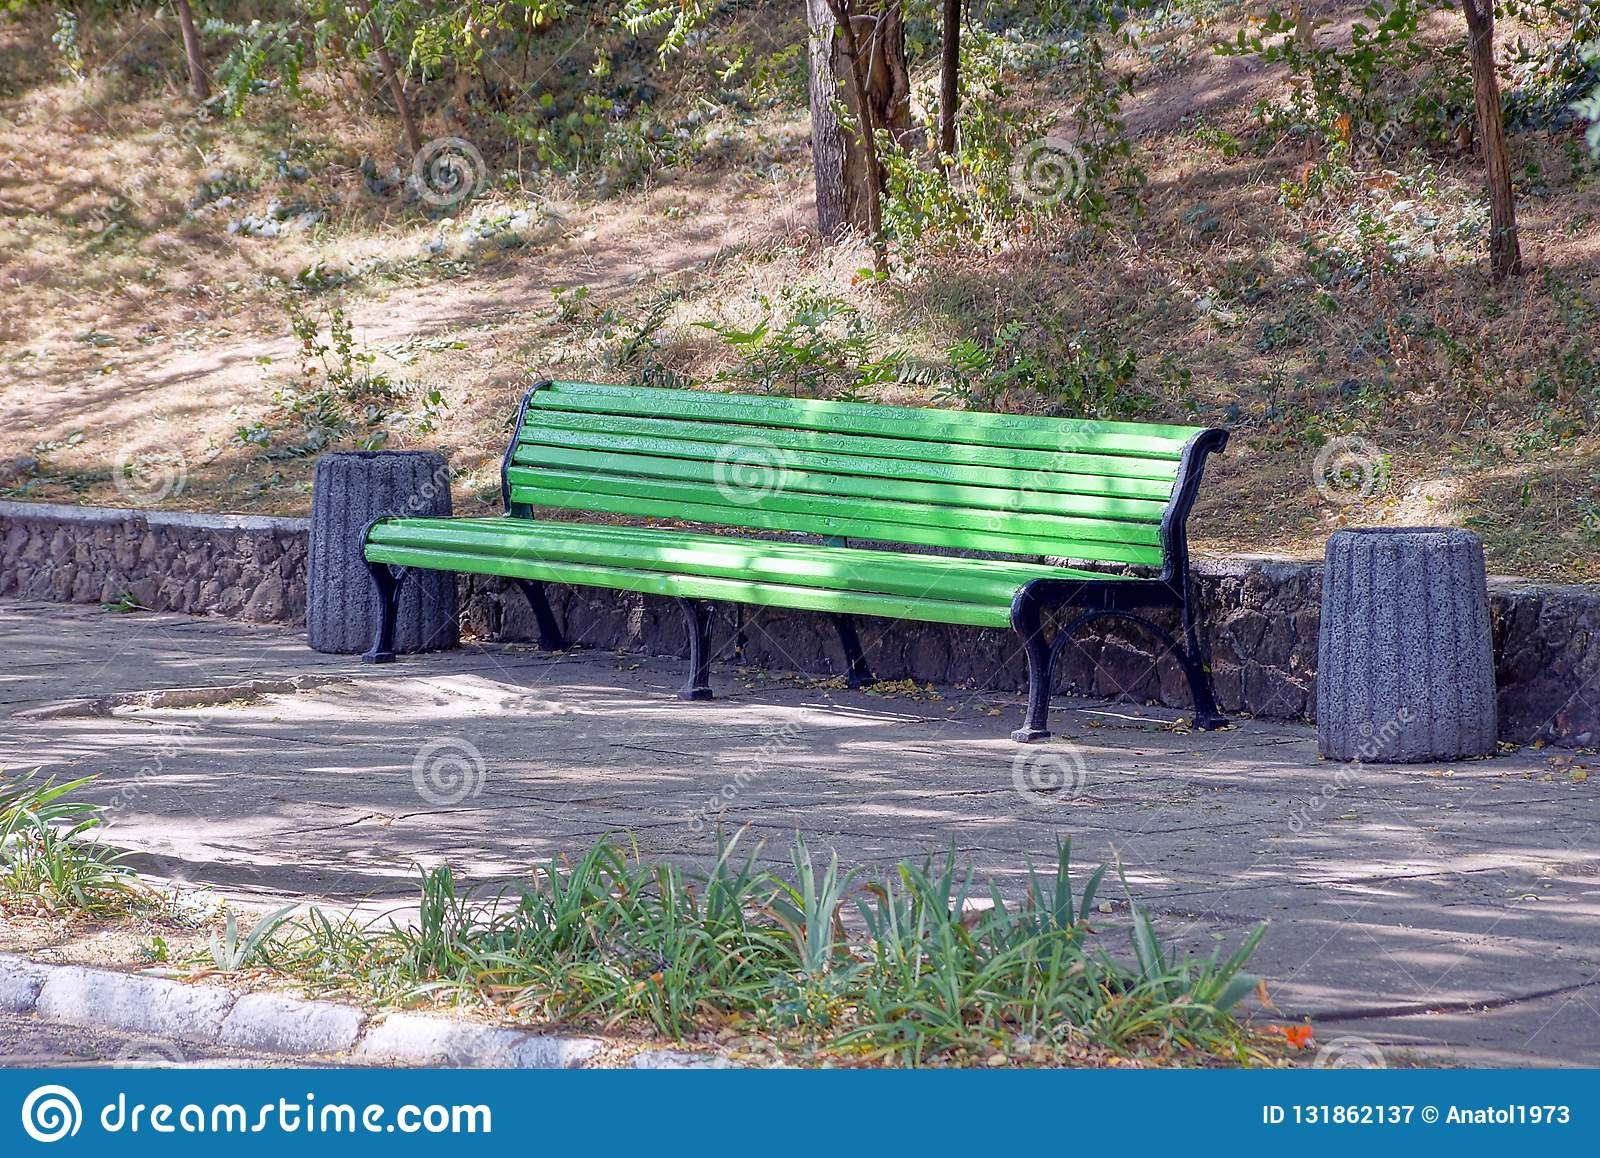 Remarkable Green Wooden Bench With Bins Stand On The Asphalt In The Gmtry Best Dining Table And Chair Ideas Images Gmtryco